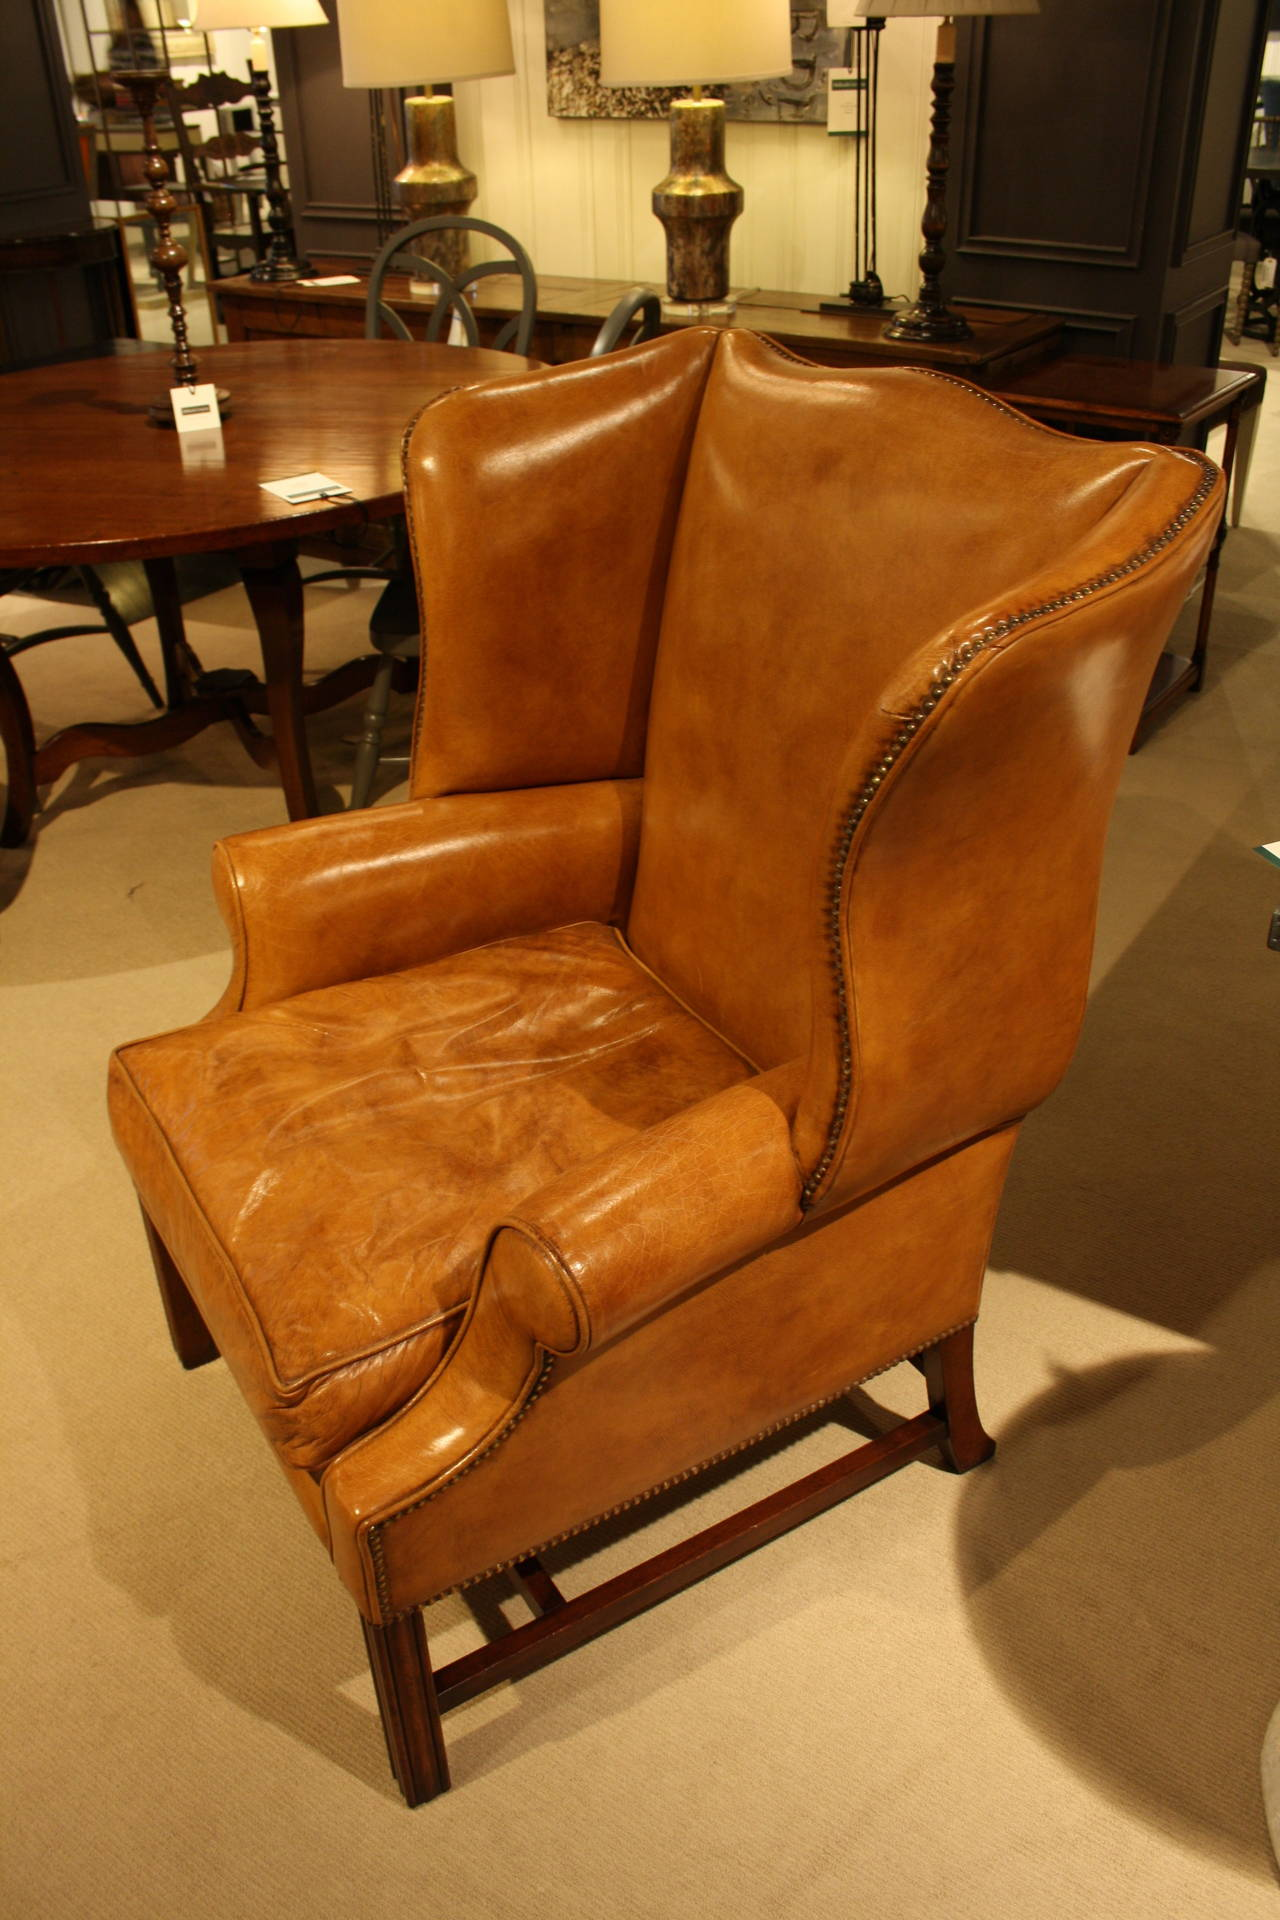 Sudbury Wing Chair in Light Tan Leather at 1stdibs